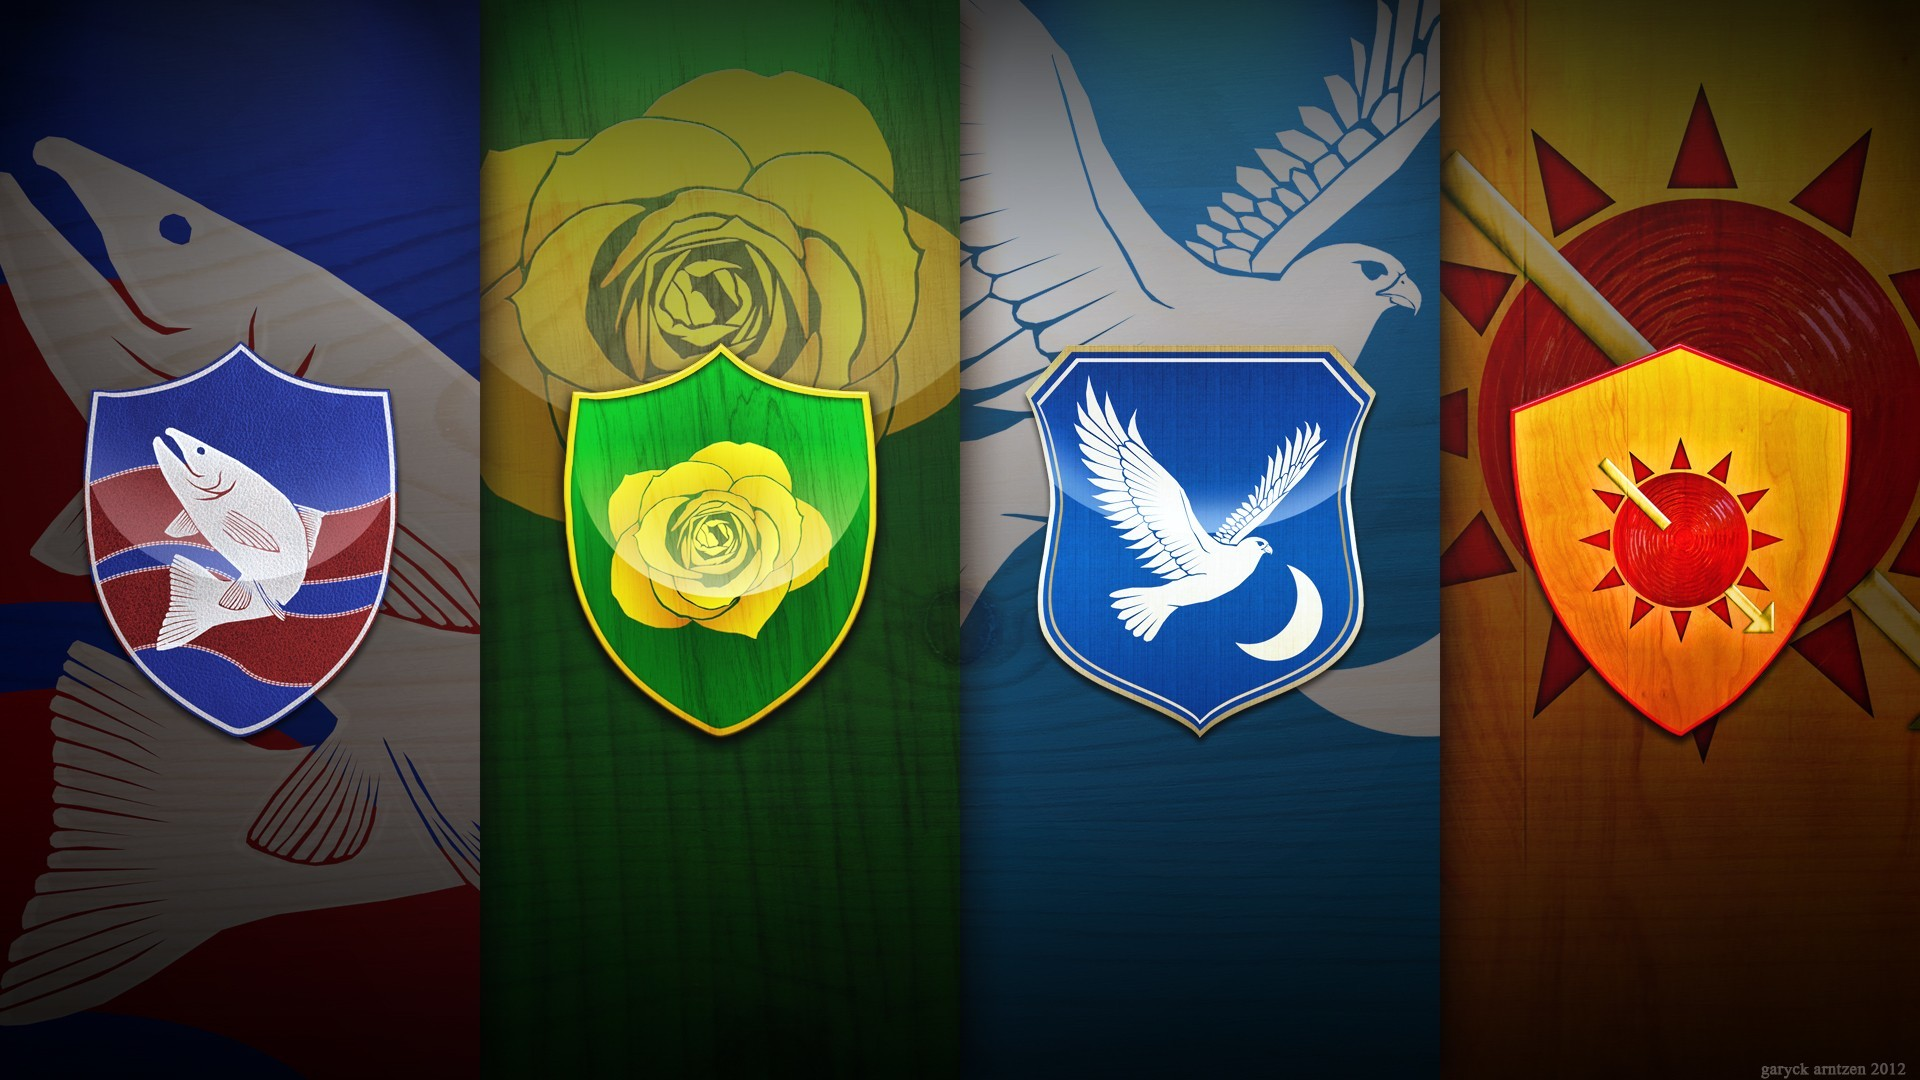 Game of Thrones Wallpapers :: houses, Game of Thrones, Noble, westeros,  House